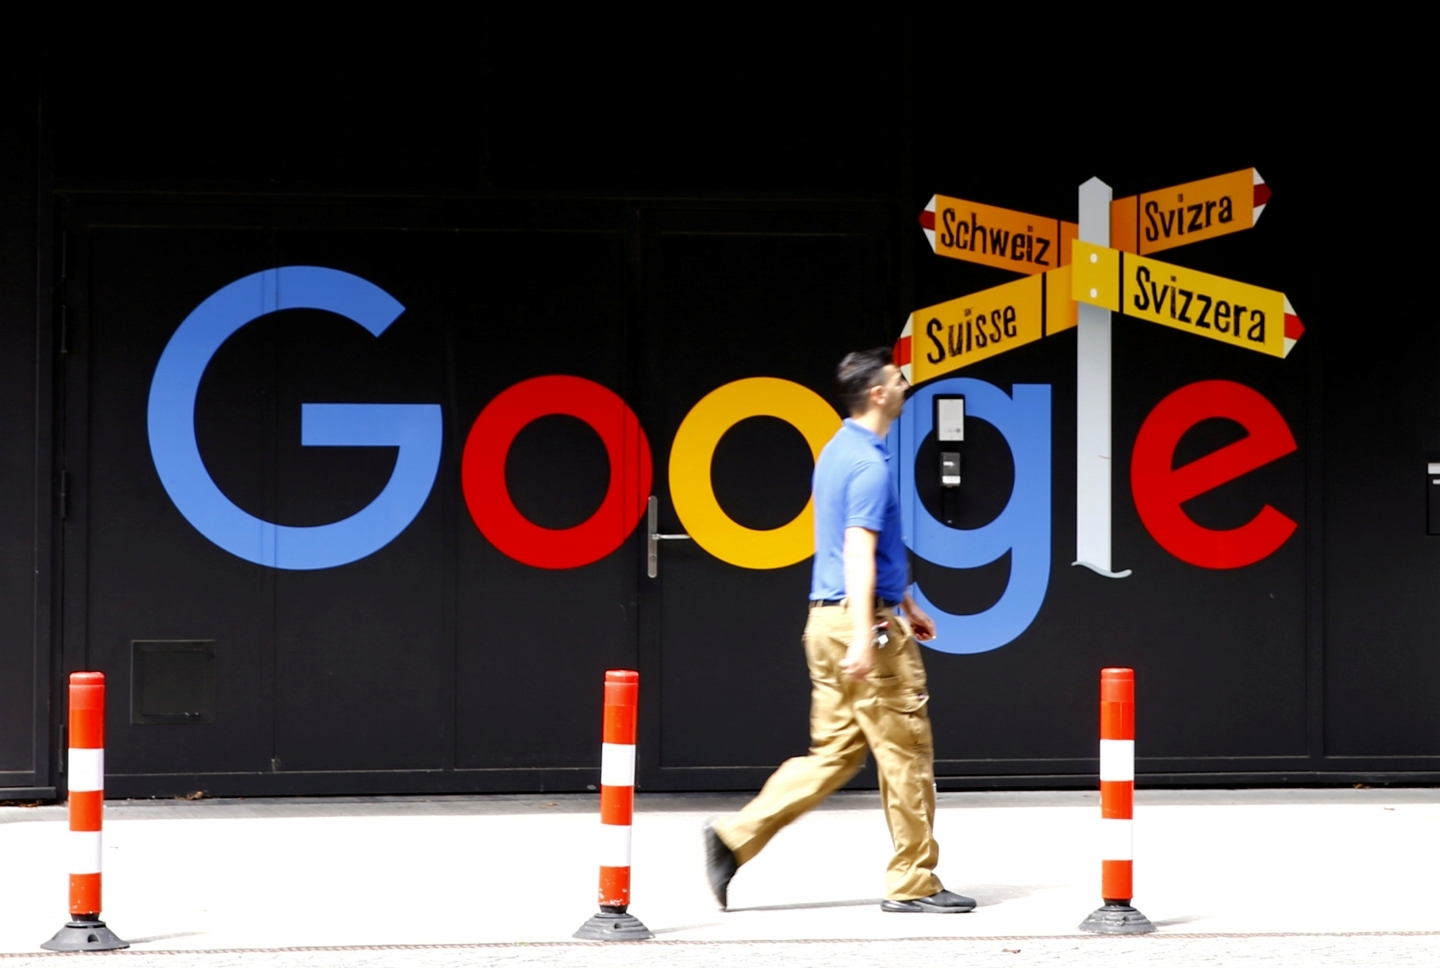 A man walks past Google's logo in front of at an office building in Zurich, Switzerland on July 1, 2020. (Reuters/Arnd Wiegmann)